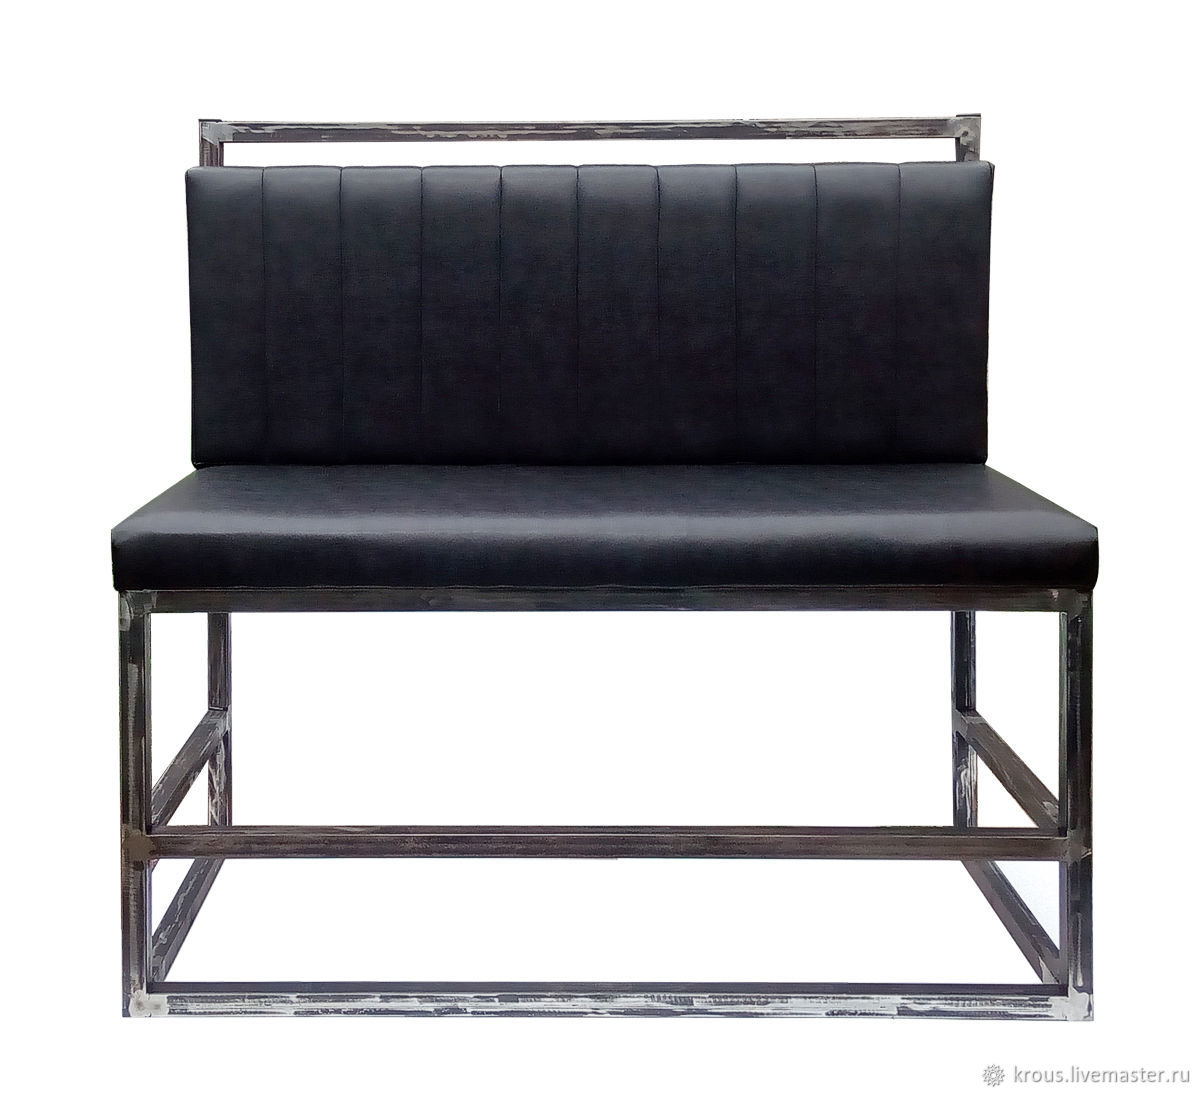 Sofa Online Shop Bar Sofa In The Style Industrial Shop Online On Livemaster With Shipping Ddfxvcom Moscow